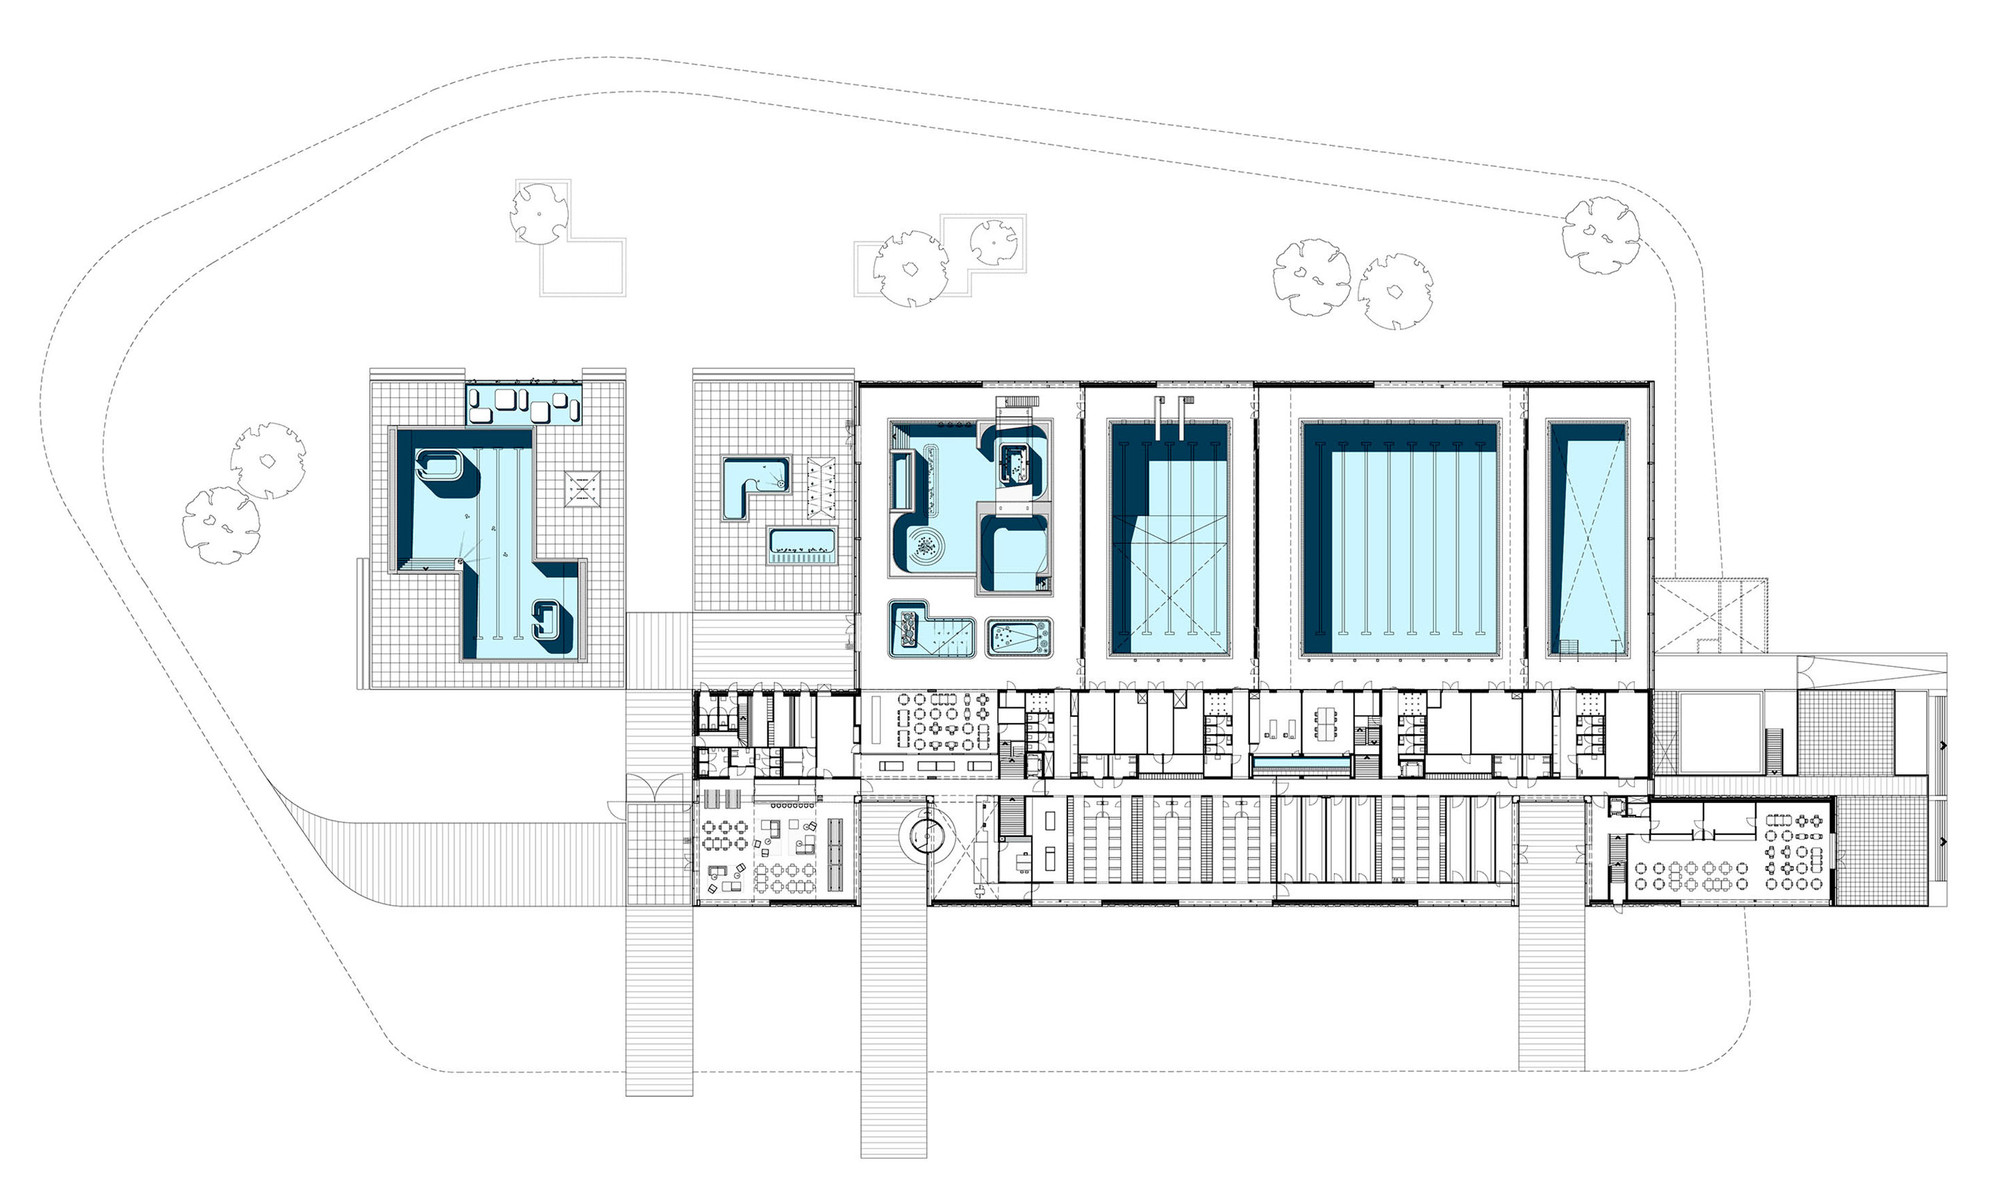 Multifunctional swimming pool complex de geusselt for Swimming pool design layout